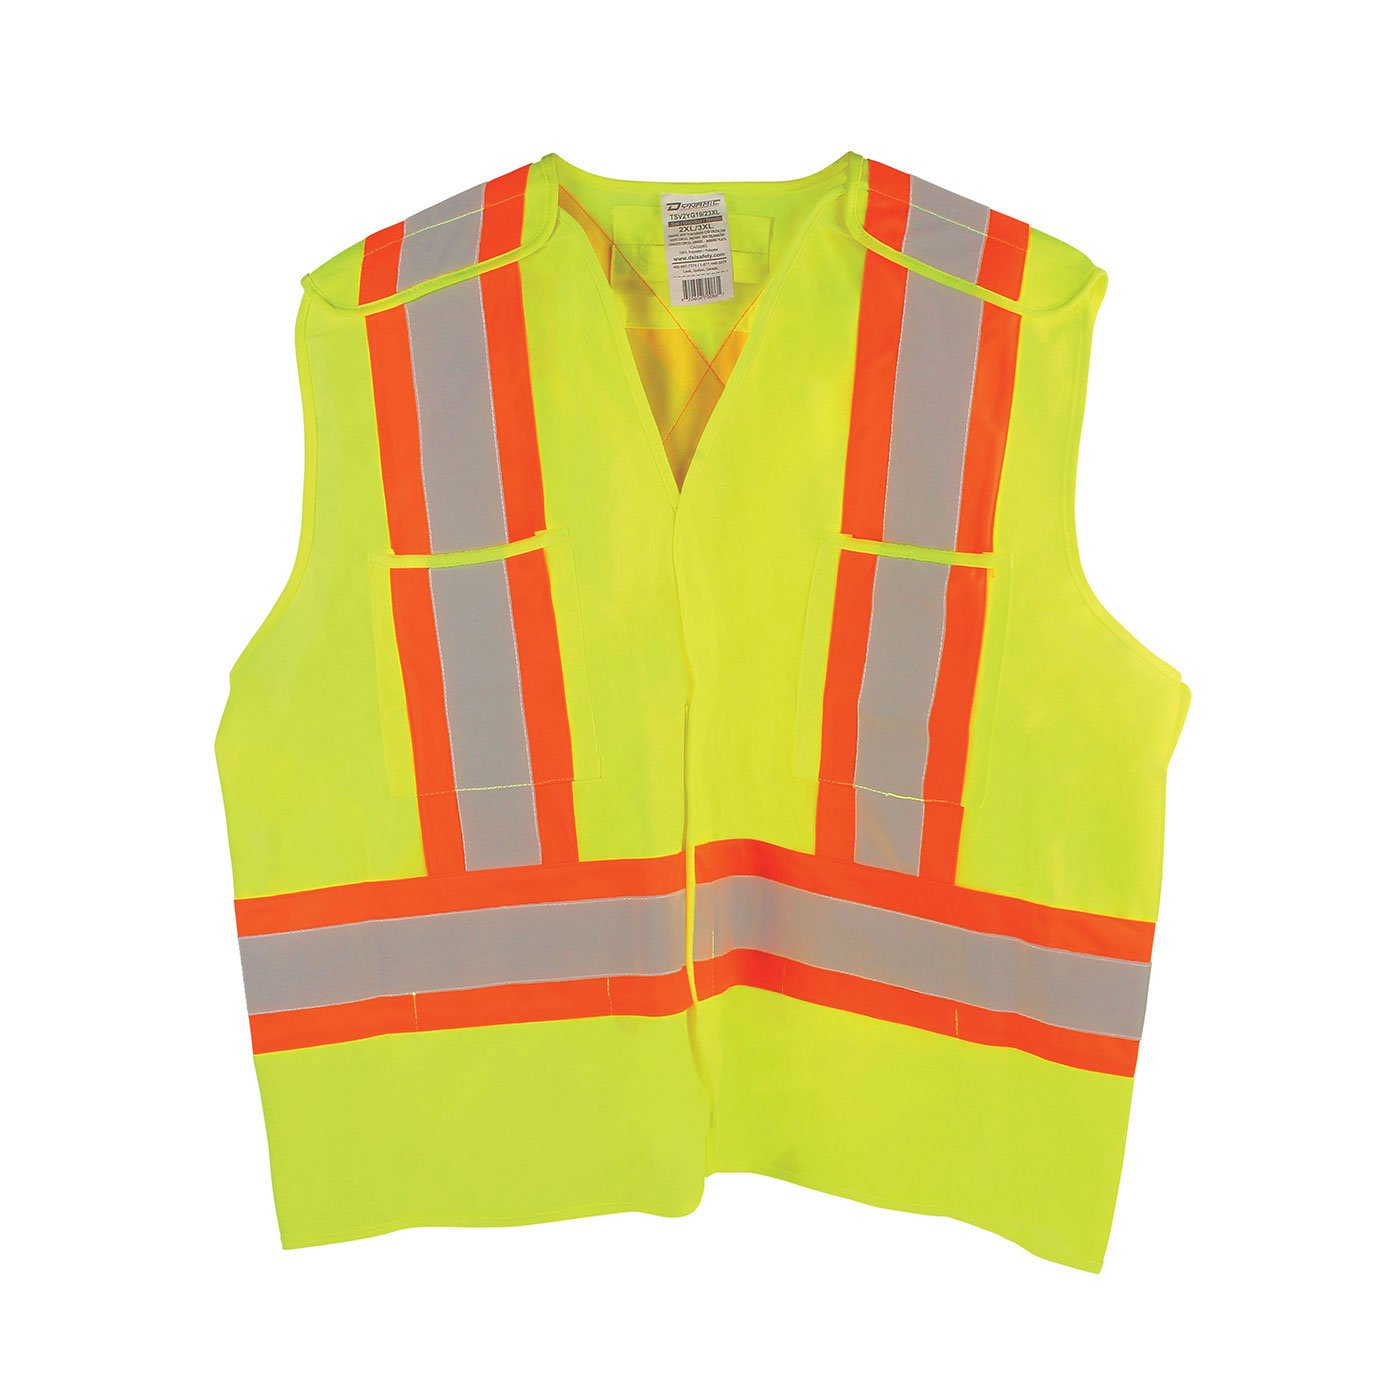 CSA Safety Vest Yellow